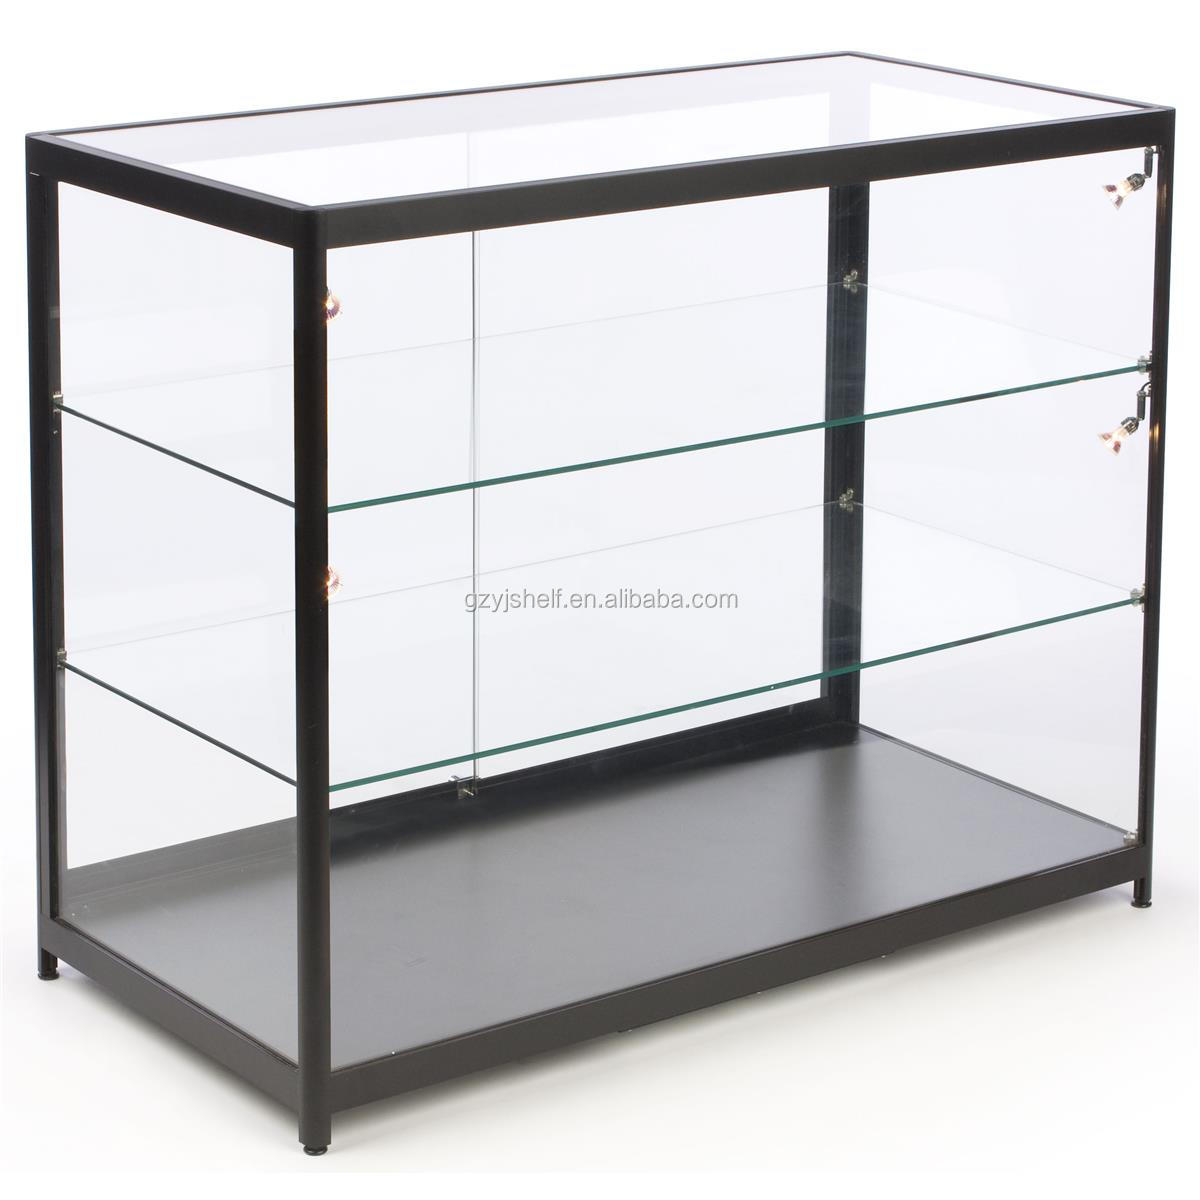 Glass Display Cabinet Rectangle Wooden Glass Jewelry Display Cabinet Glass